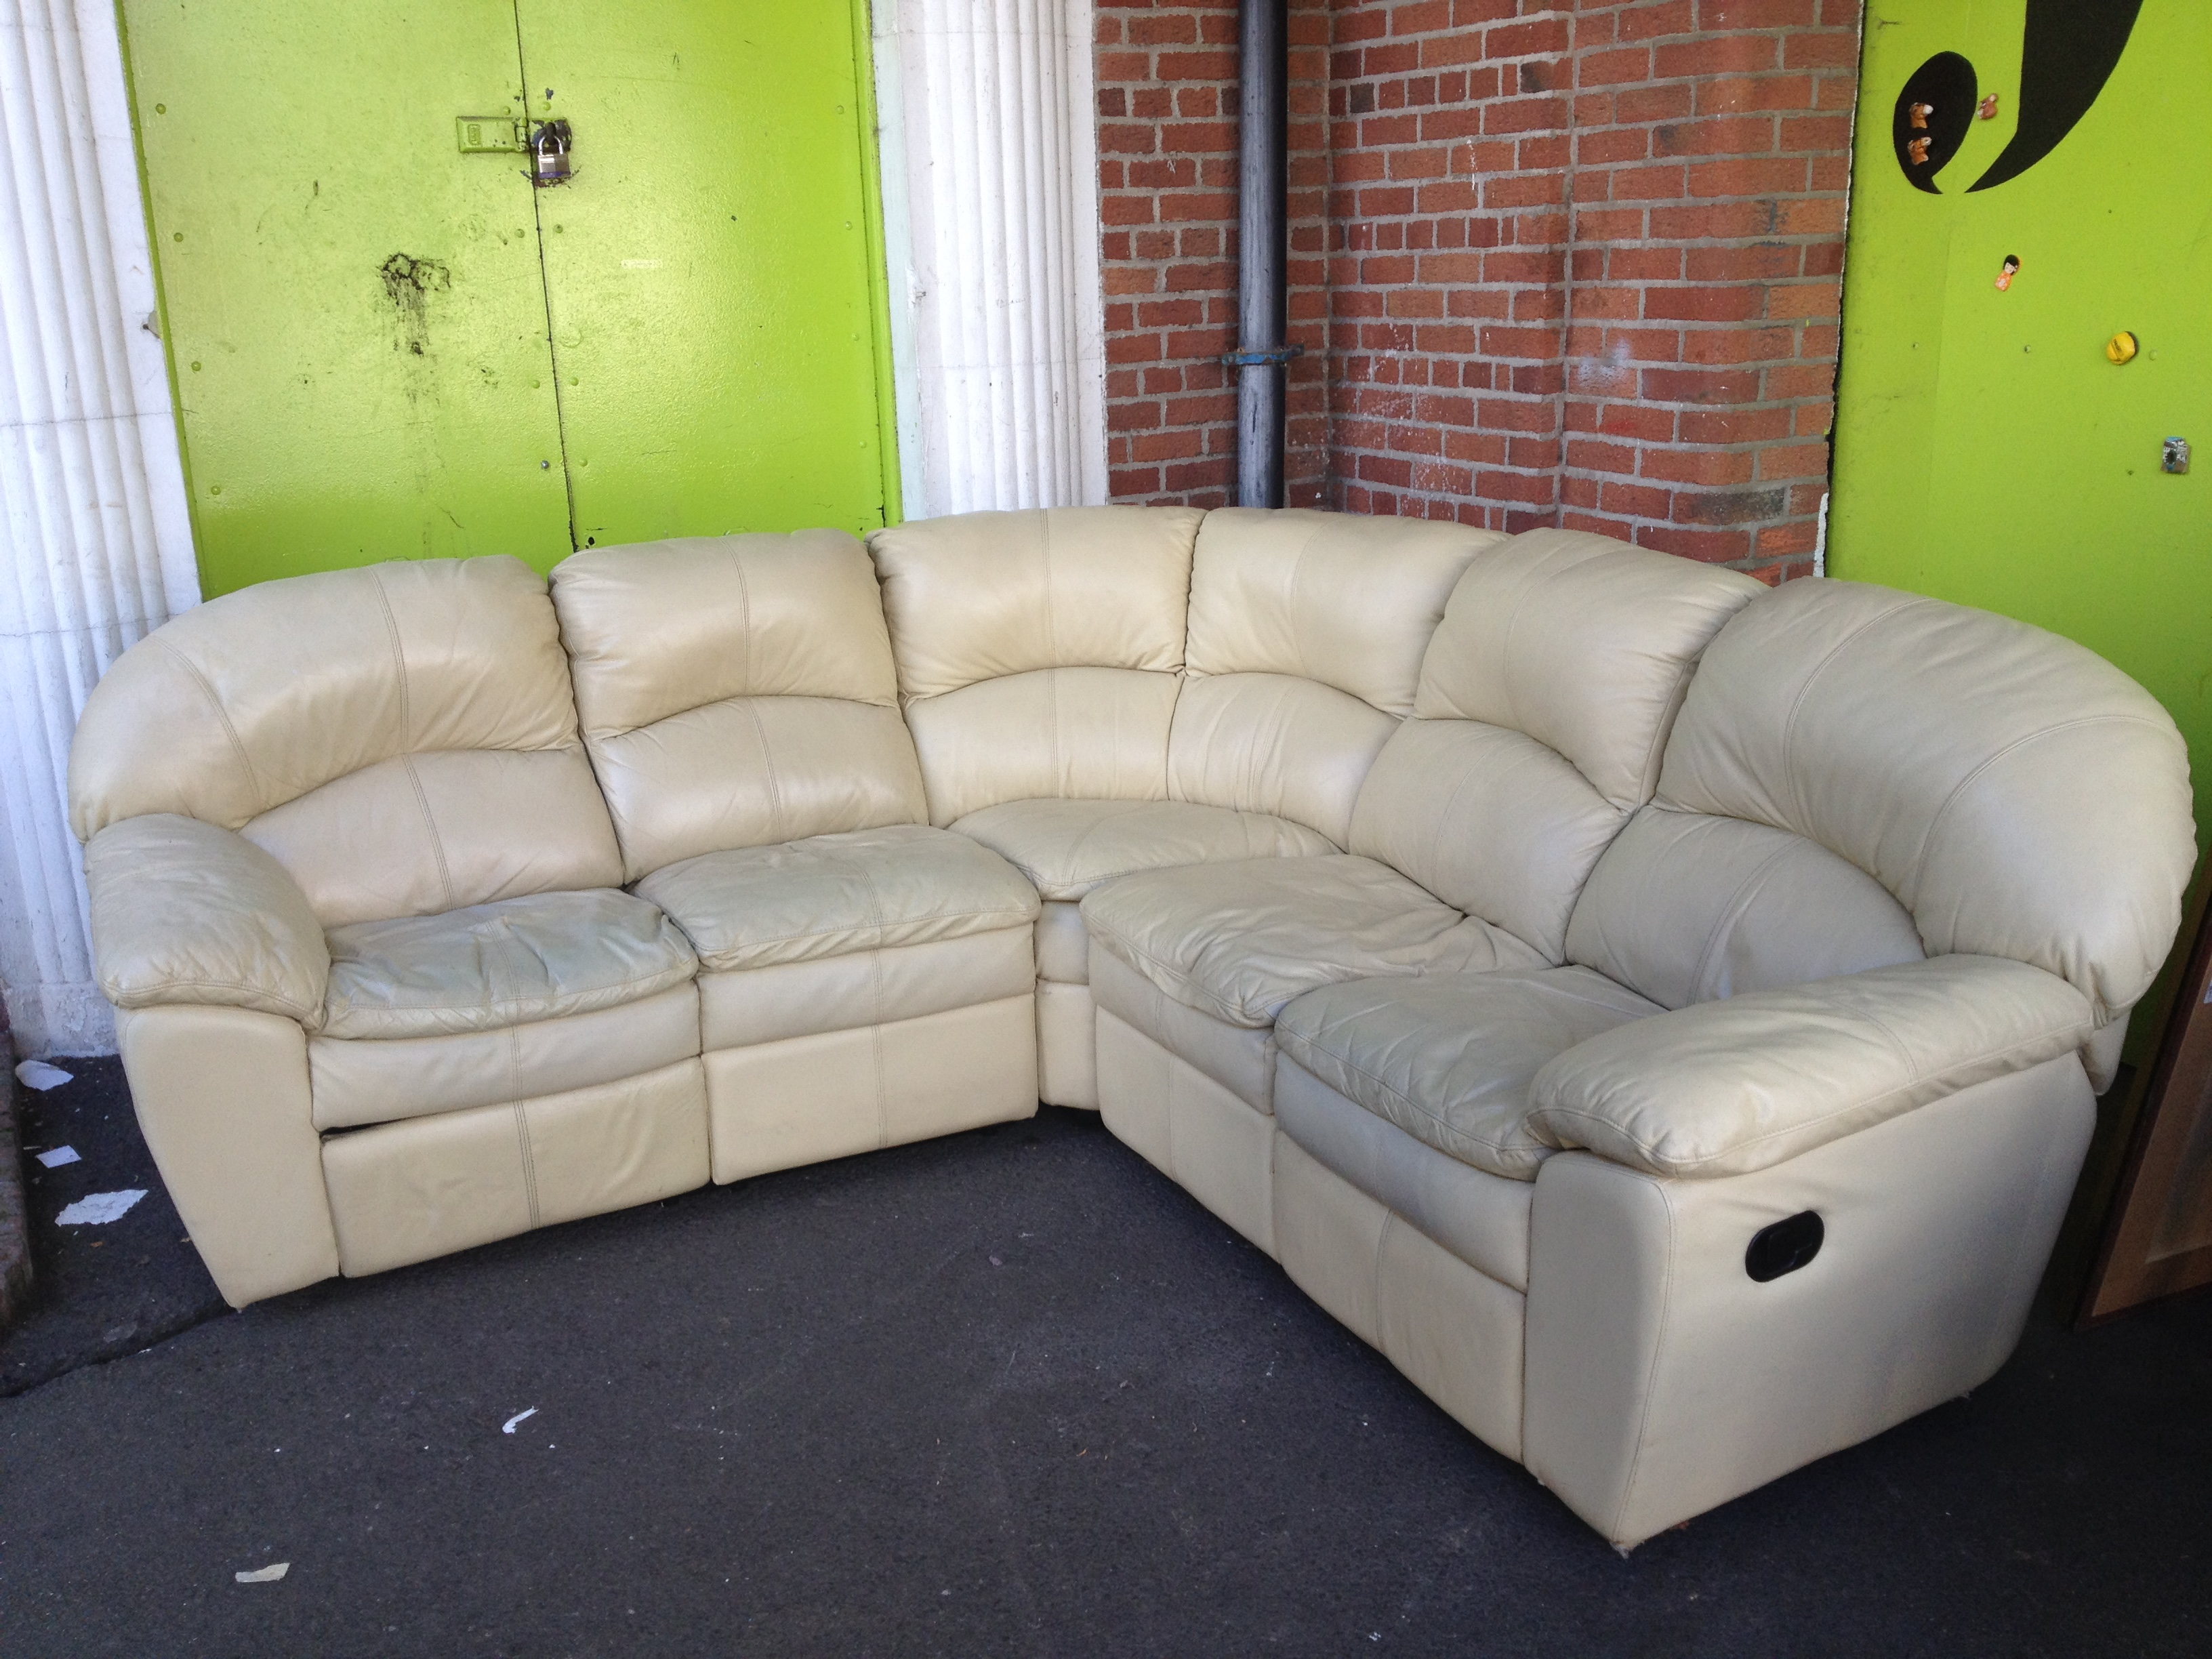 2nd hand sofas for sale buy cheap sofas and couches in for Affordable sofas for sale